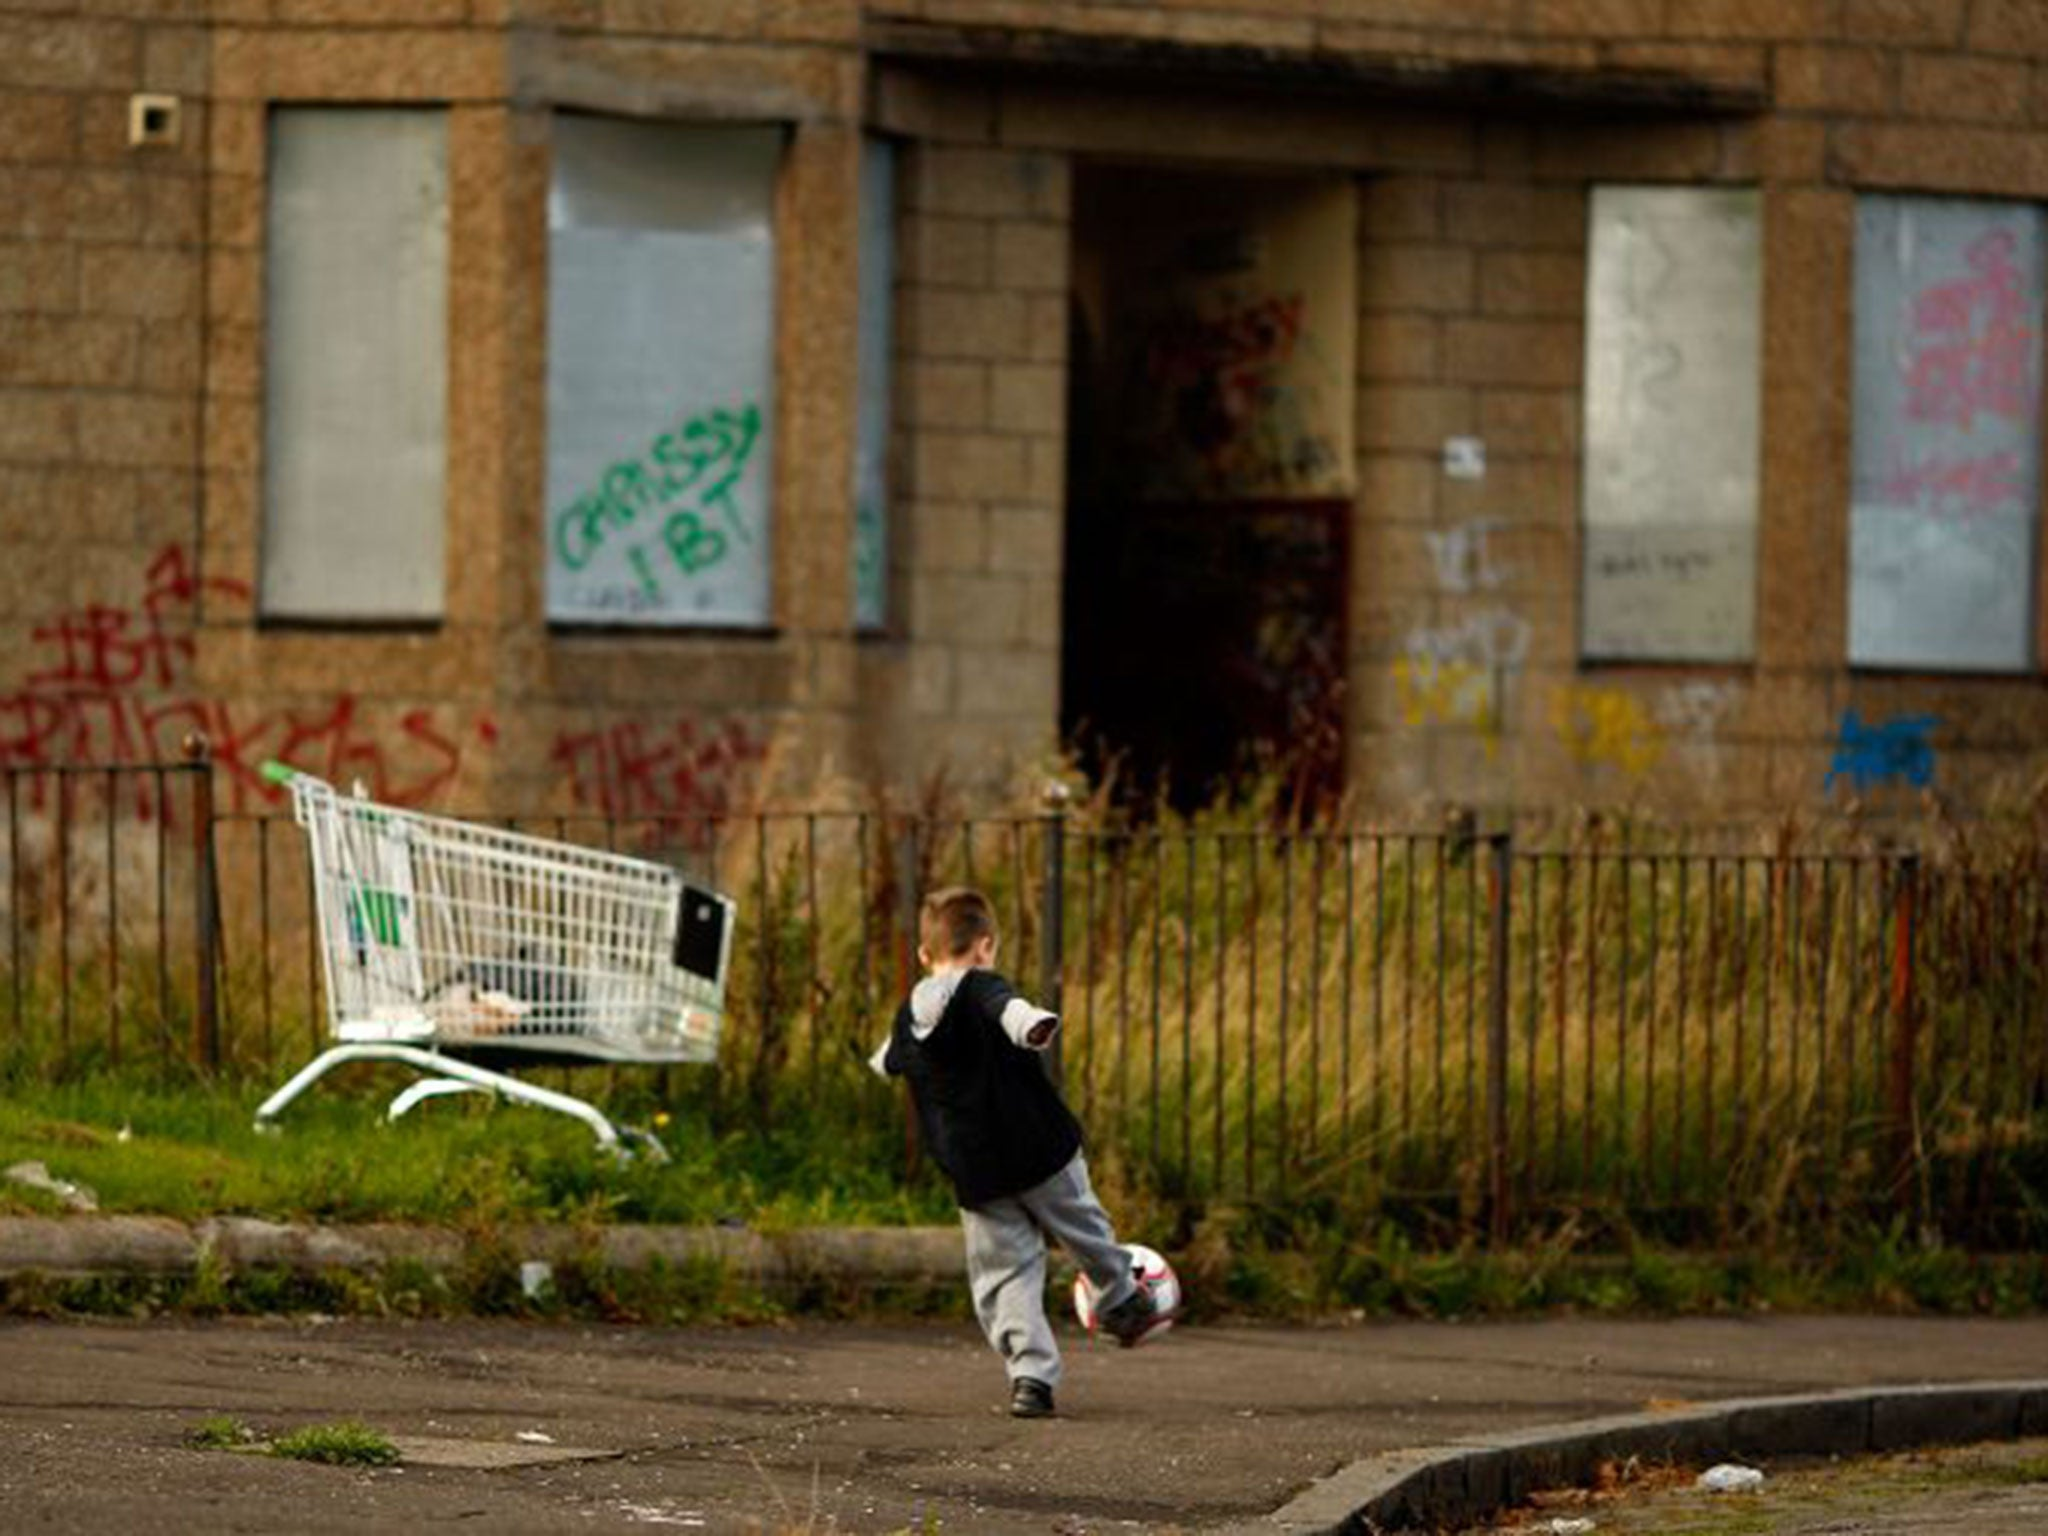 essay on child poverty in the uk The institute for fiscal studies reported the numbers of poor united kingdom children in wage-earning families how poverty in the united kingdom is.